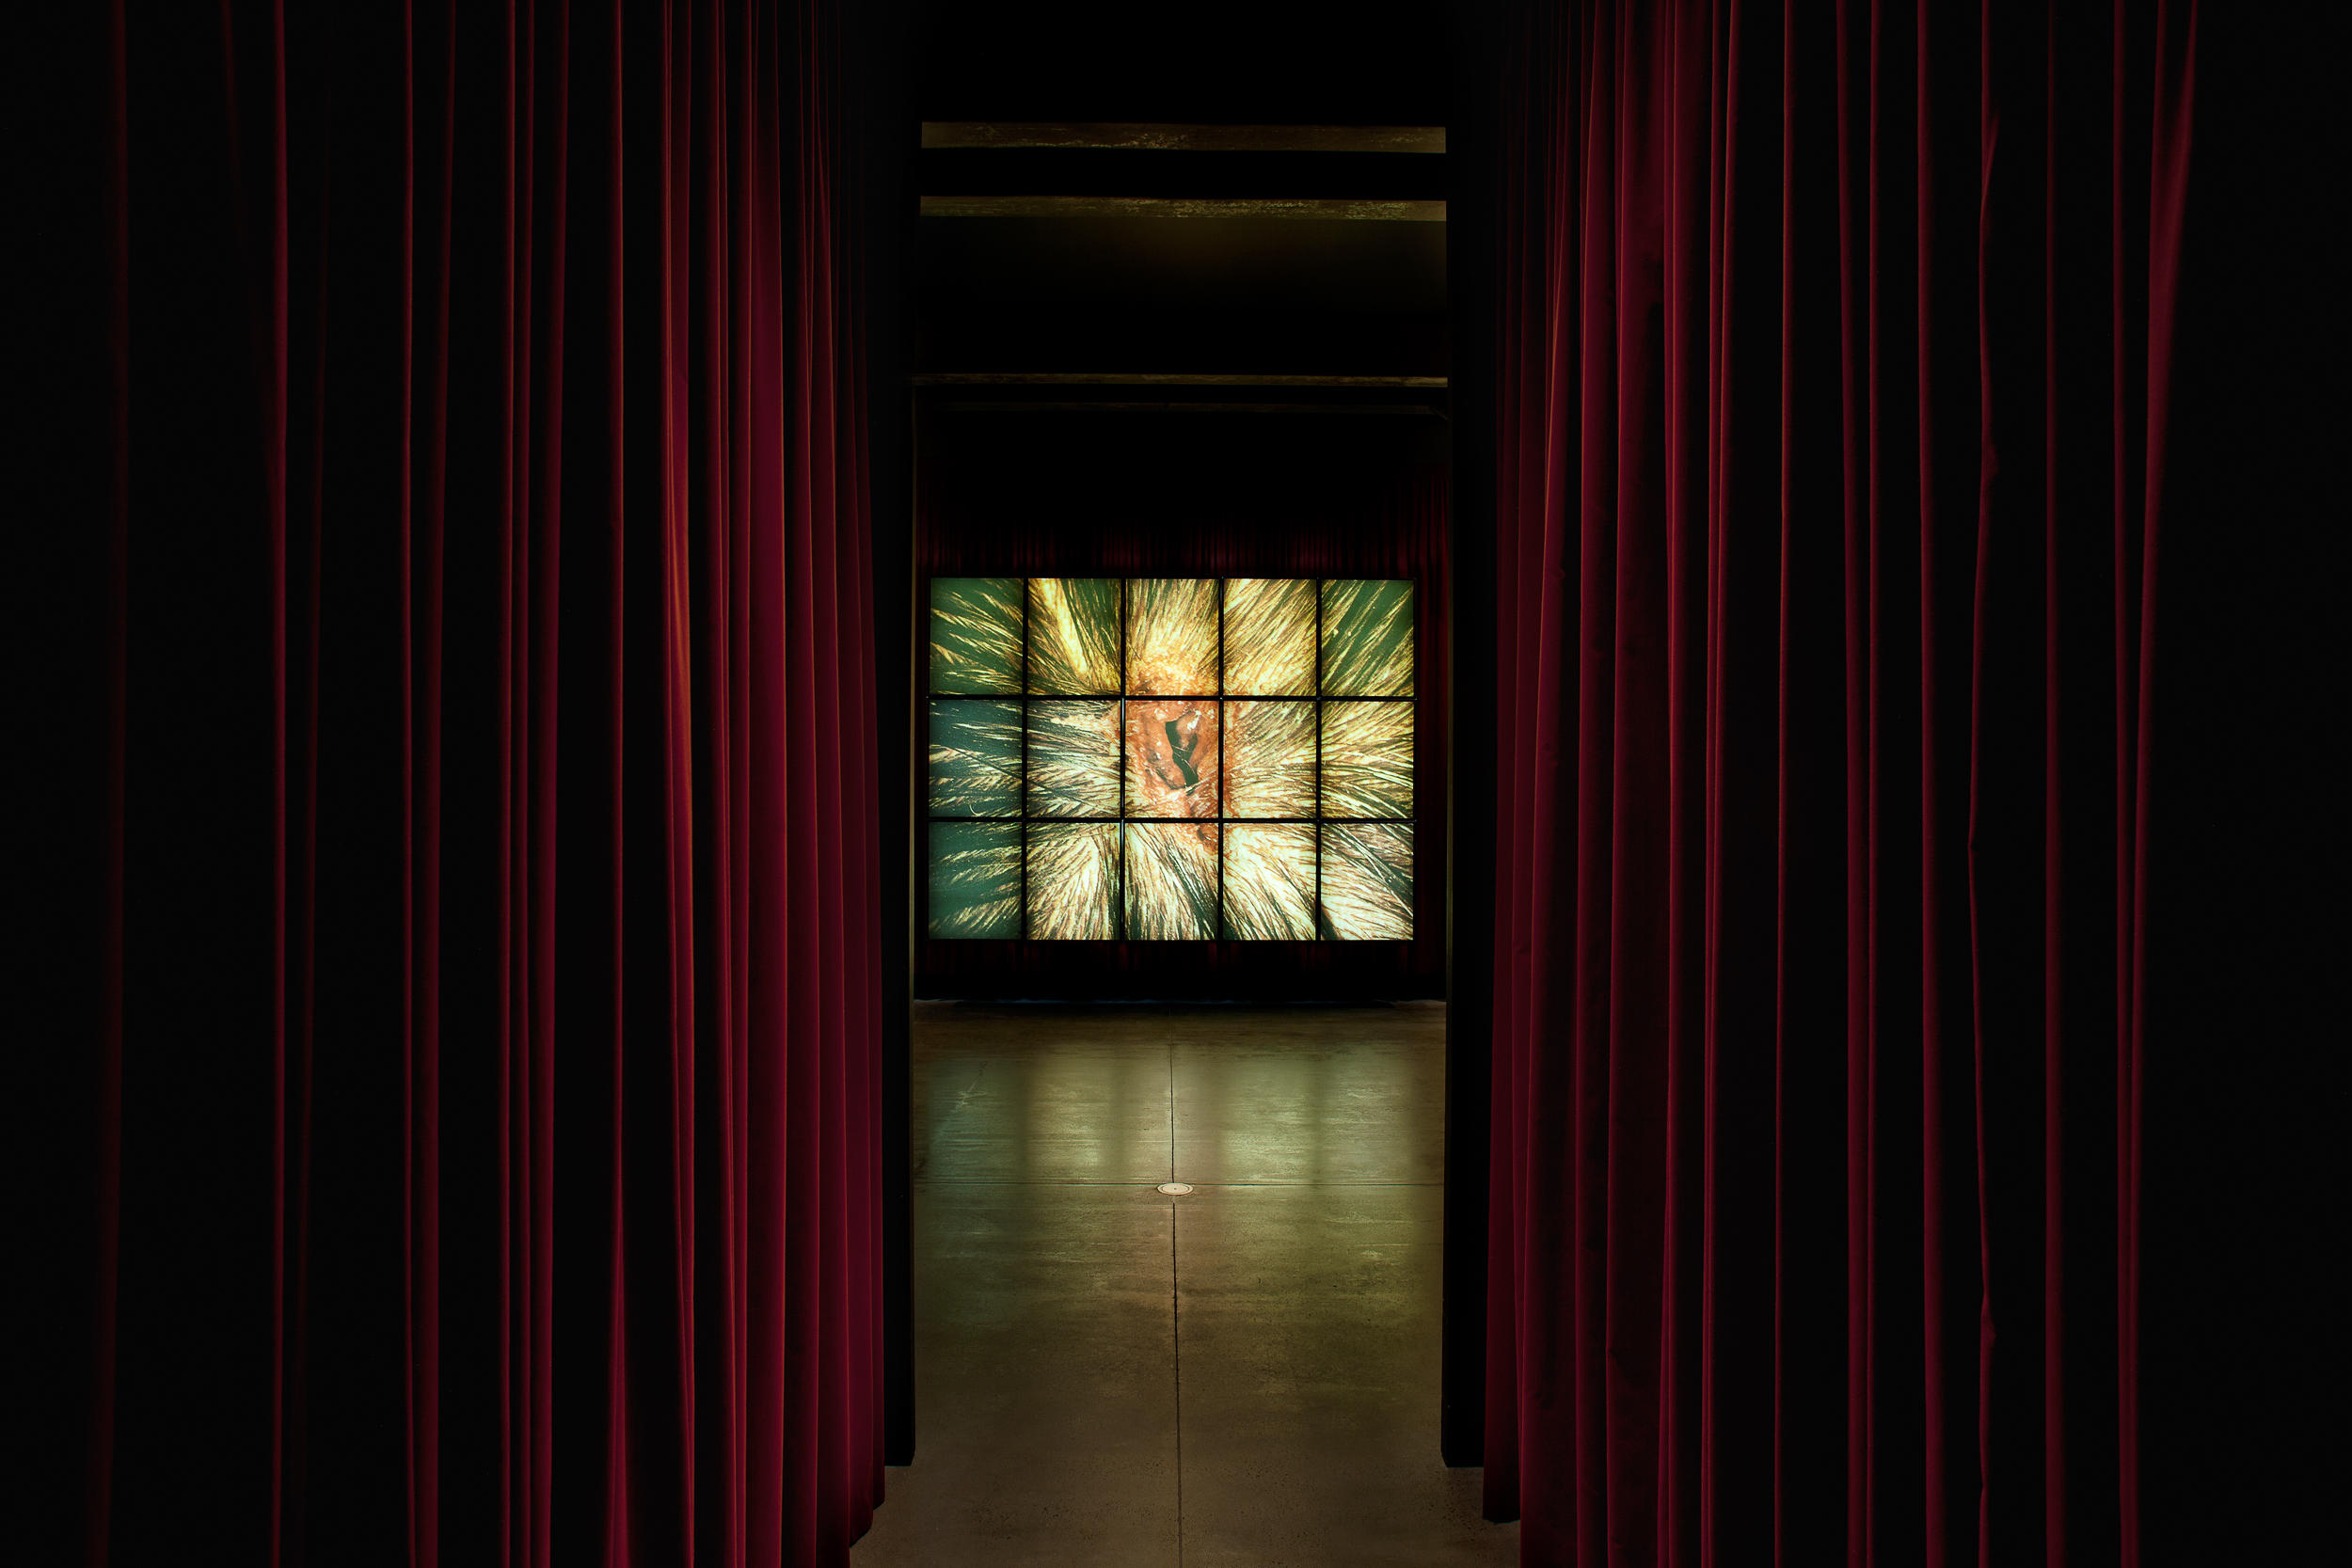 Bullet Hole 1988 to 1993  Mat Collishaw (1966, Nottingham, England; lives and works in London, England) Cibachrome mounted on 15 light boxes